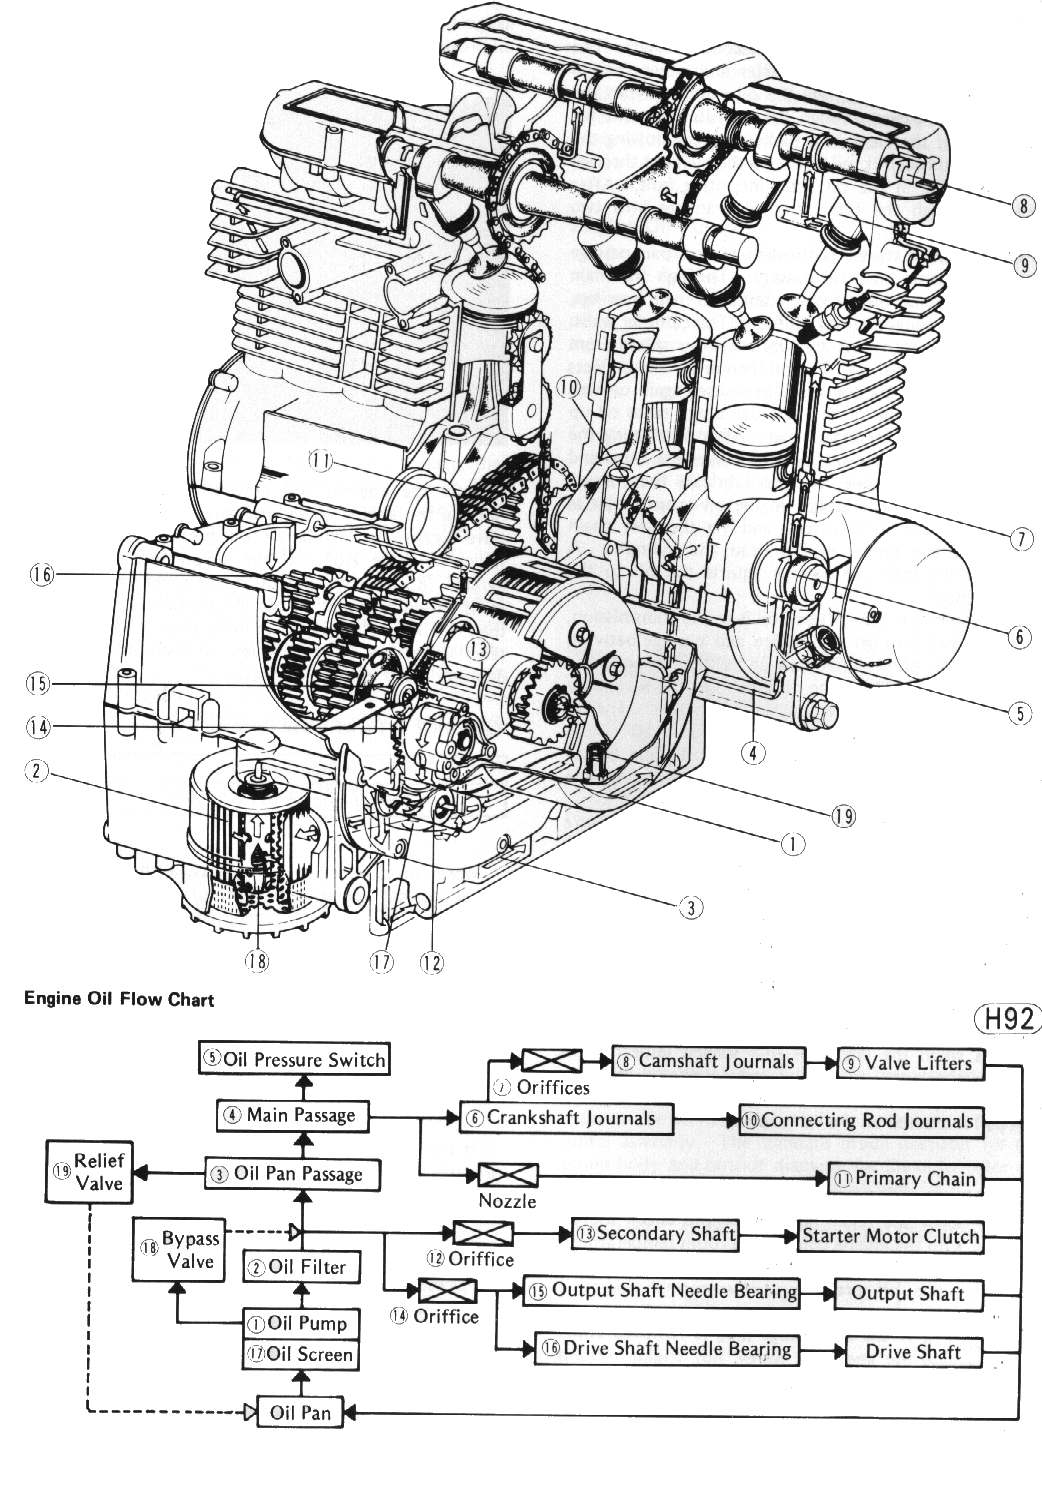 1980 Kz650 Wiring Diagram Free Download 1978 Kawasaki Diagrams 1979 Carburetor Explore Schematic At